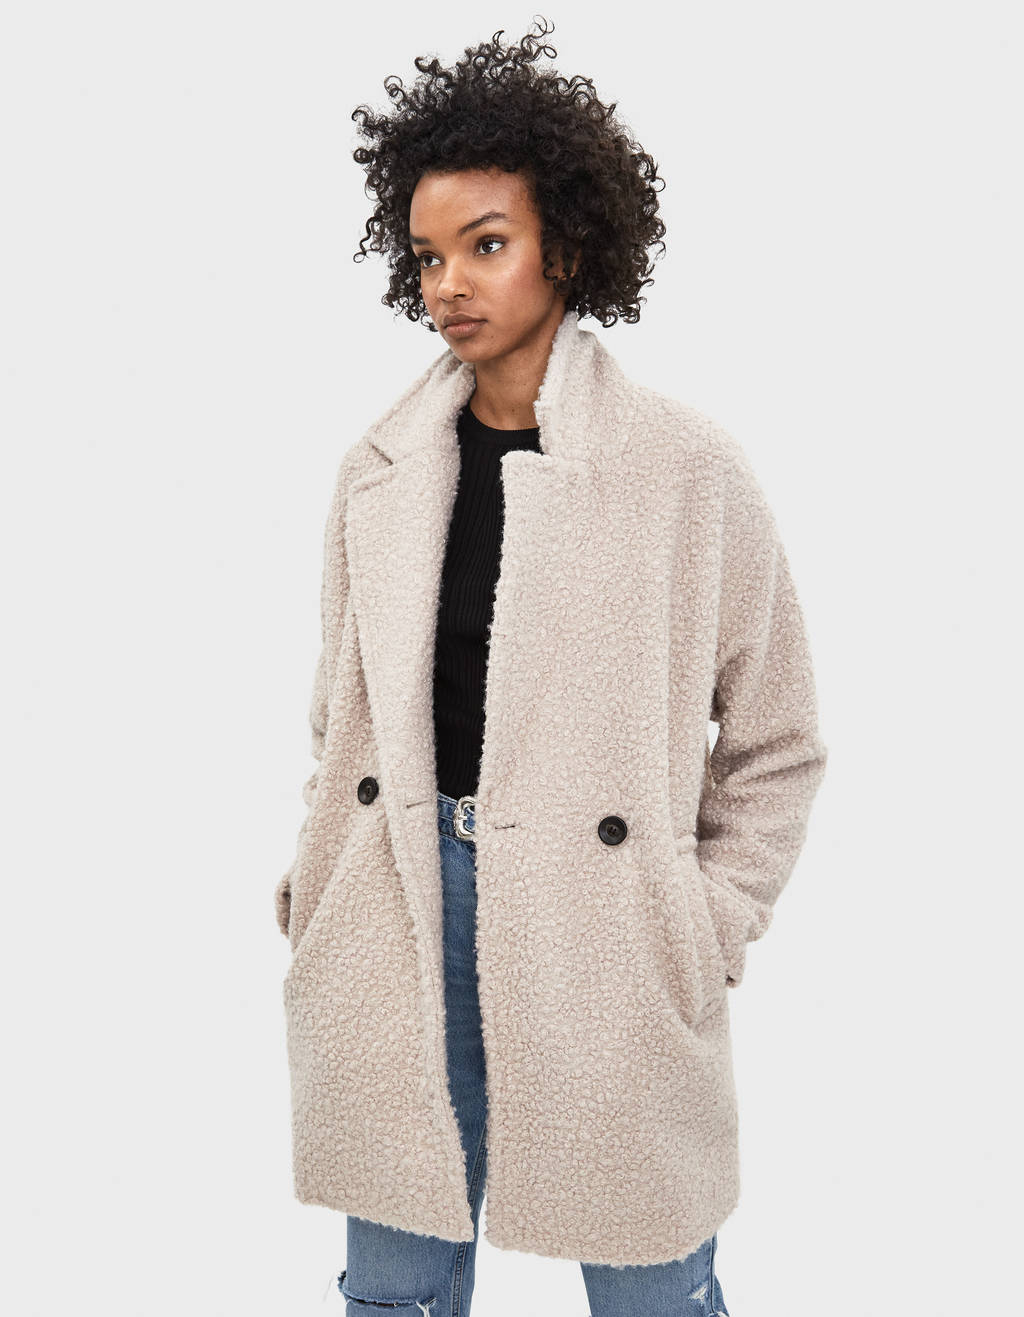 Manteau imitation peau de mouton